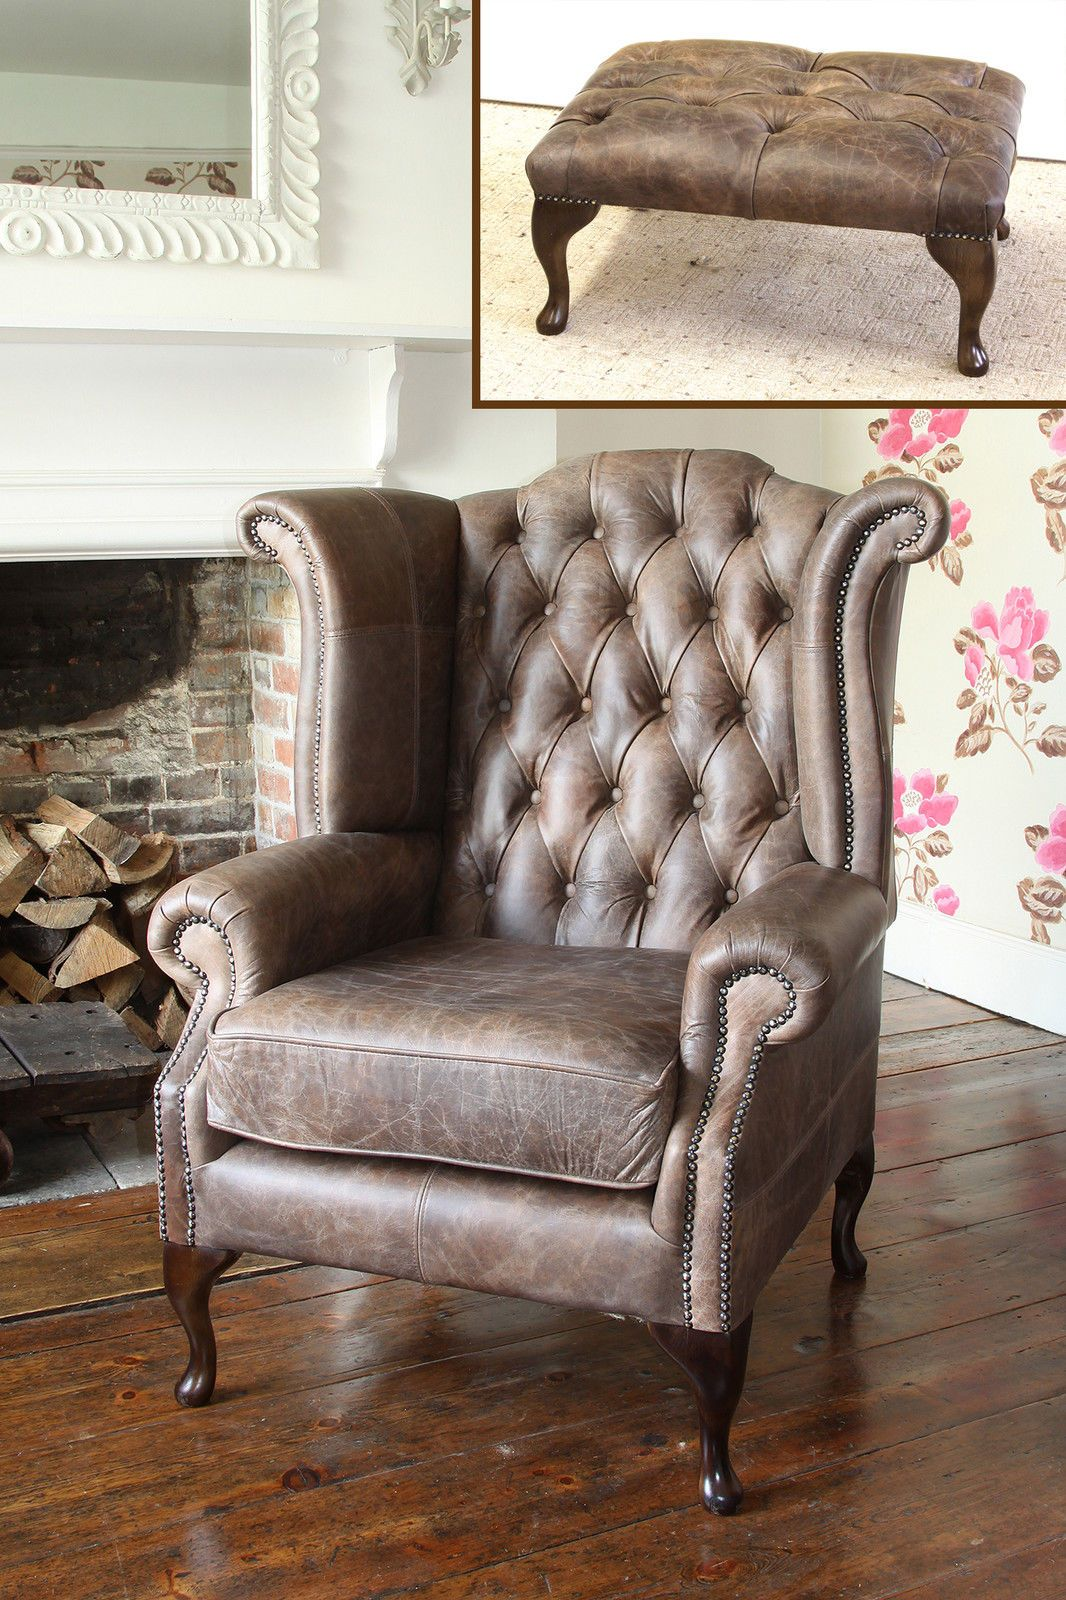 Chesterfield Queen Anne Wing Chair Matching Footstool In Vintage Brown Leather